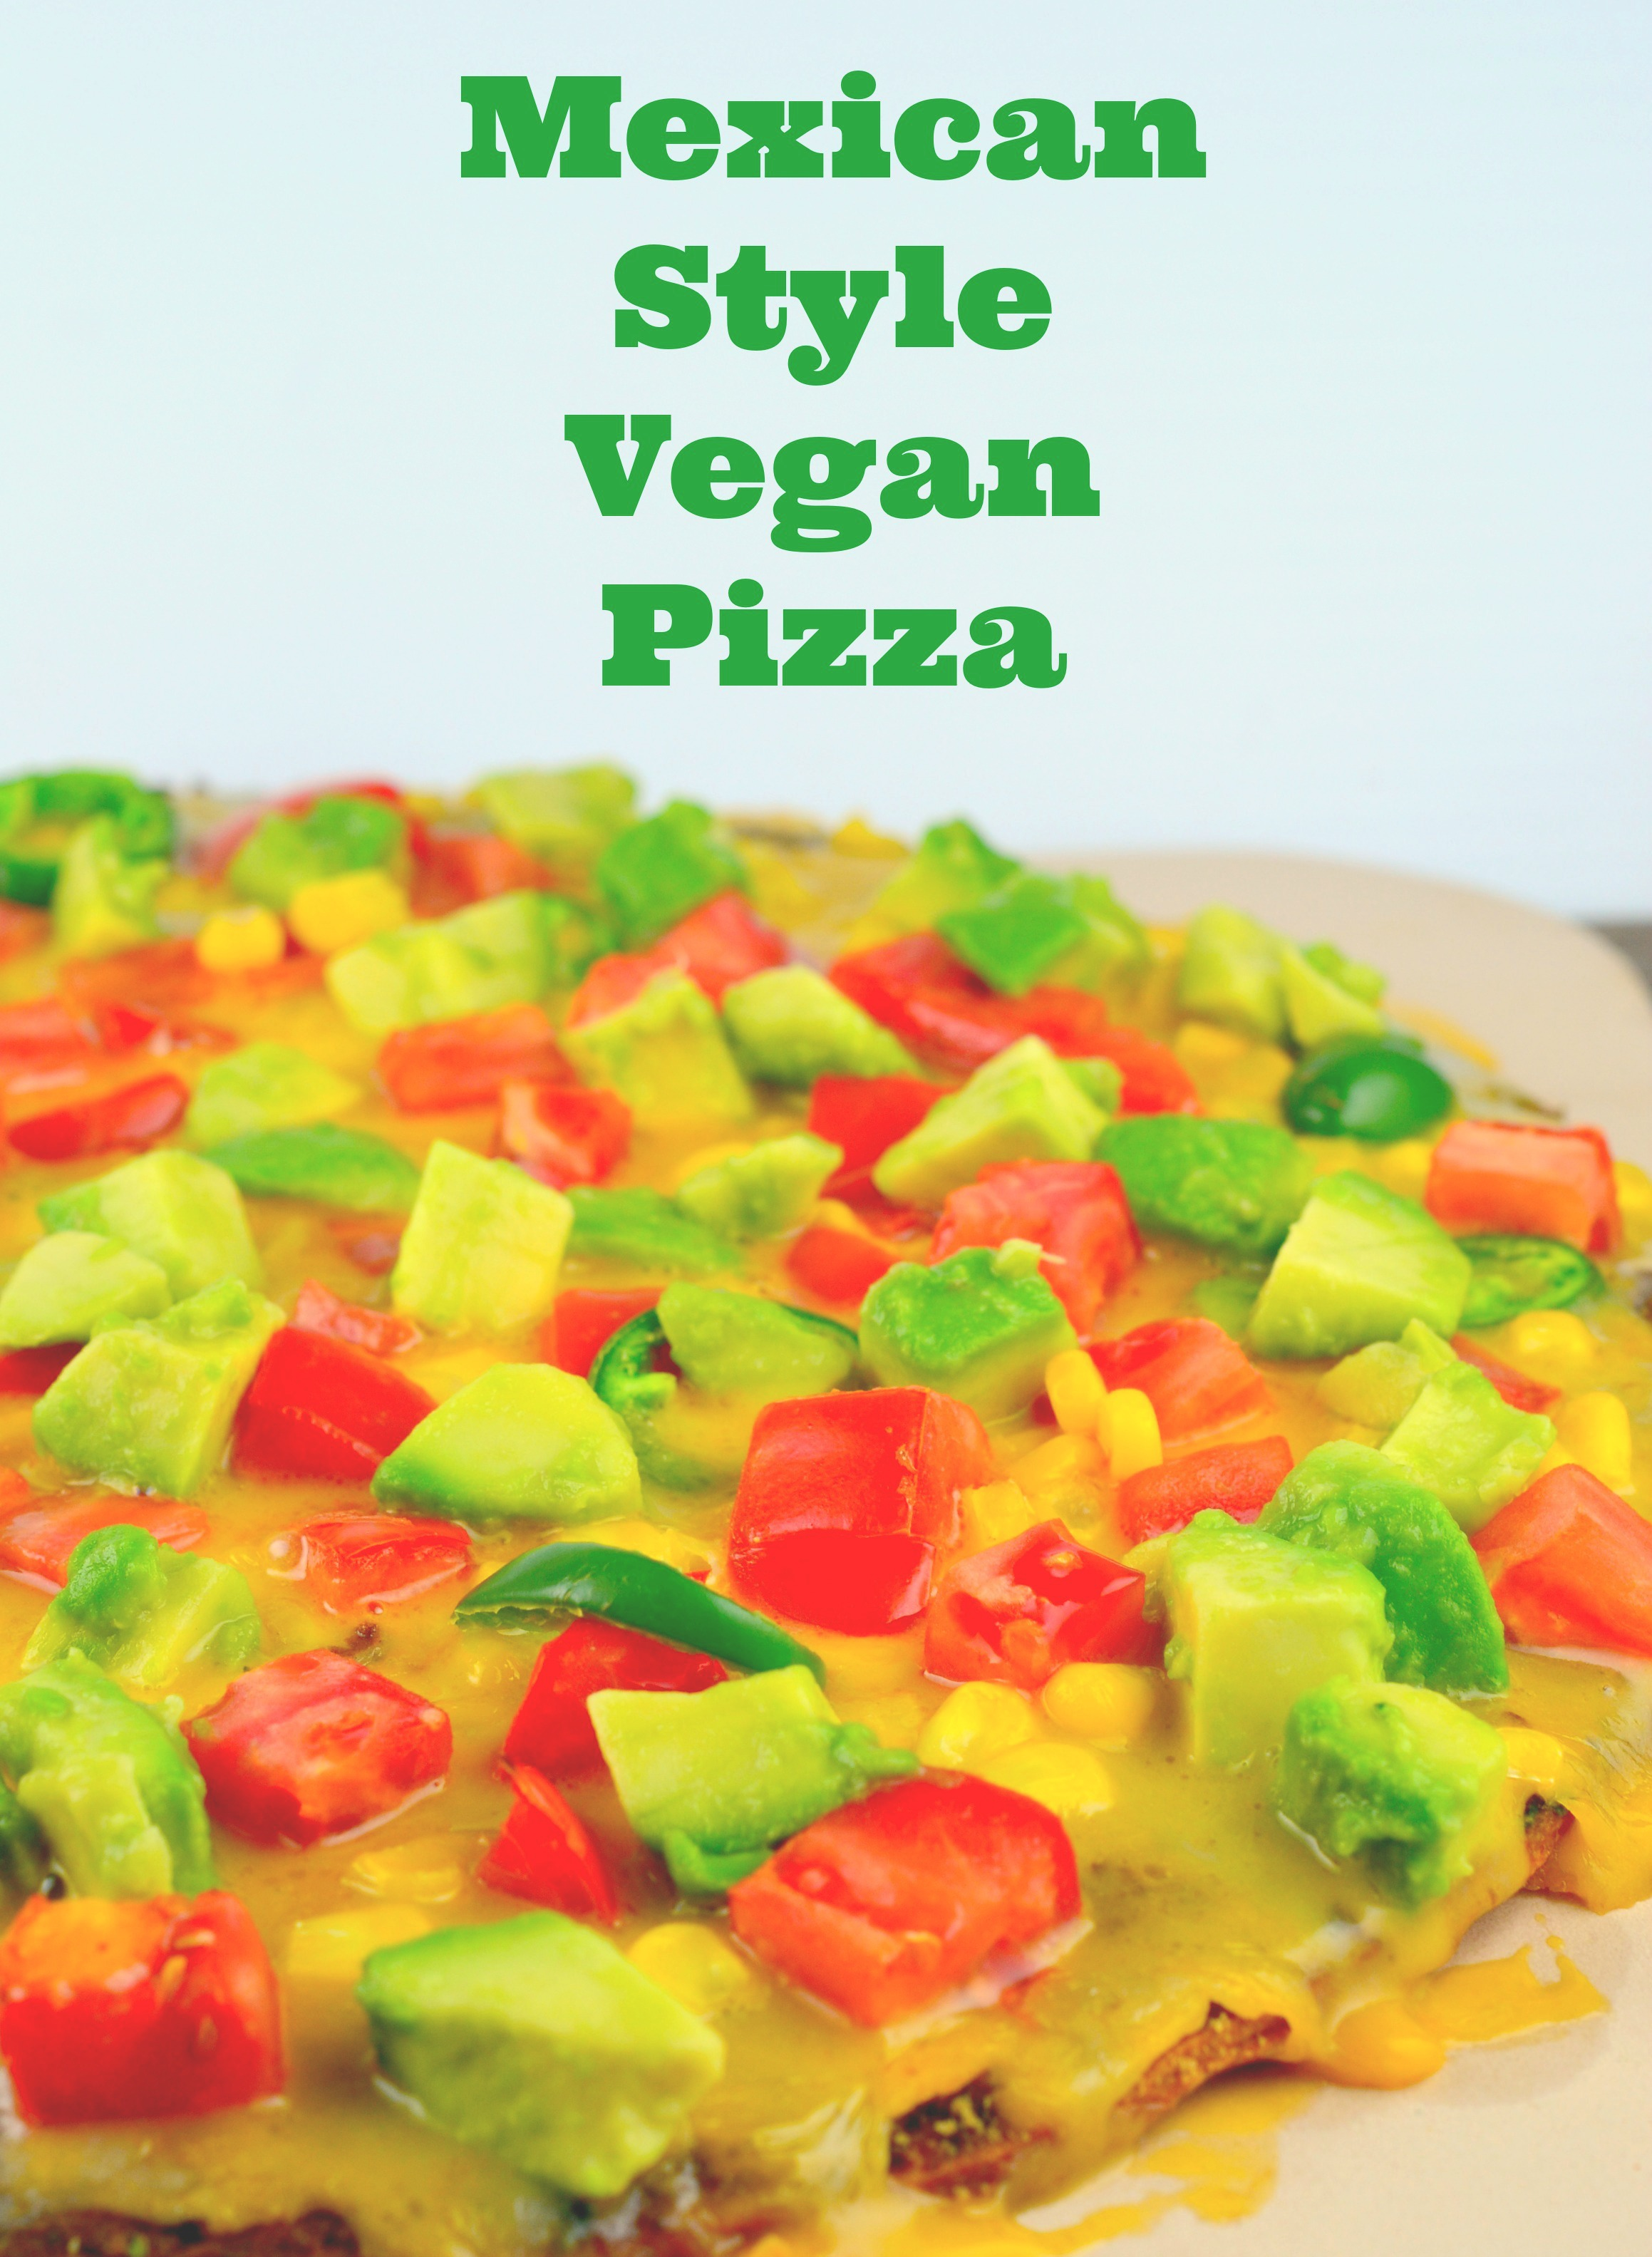 Mexican Style Vegan Pizza